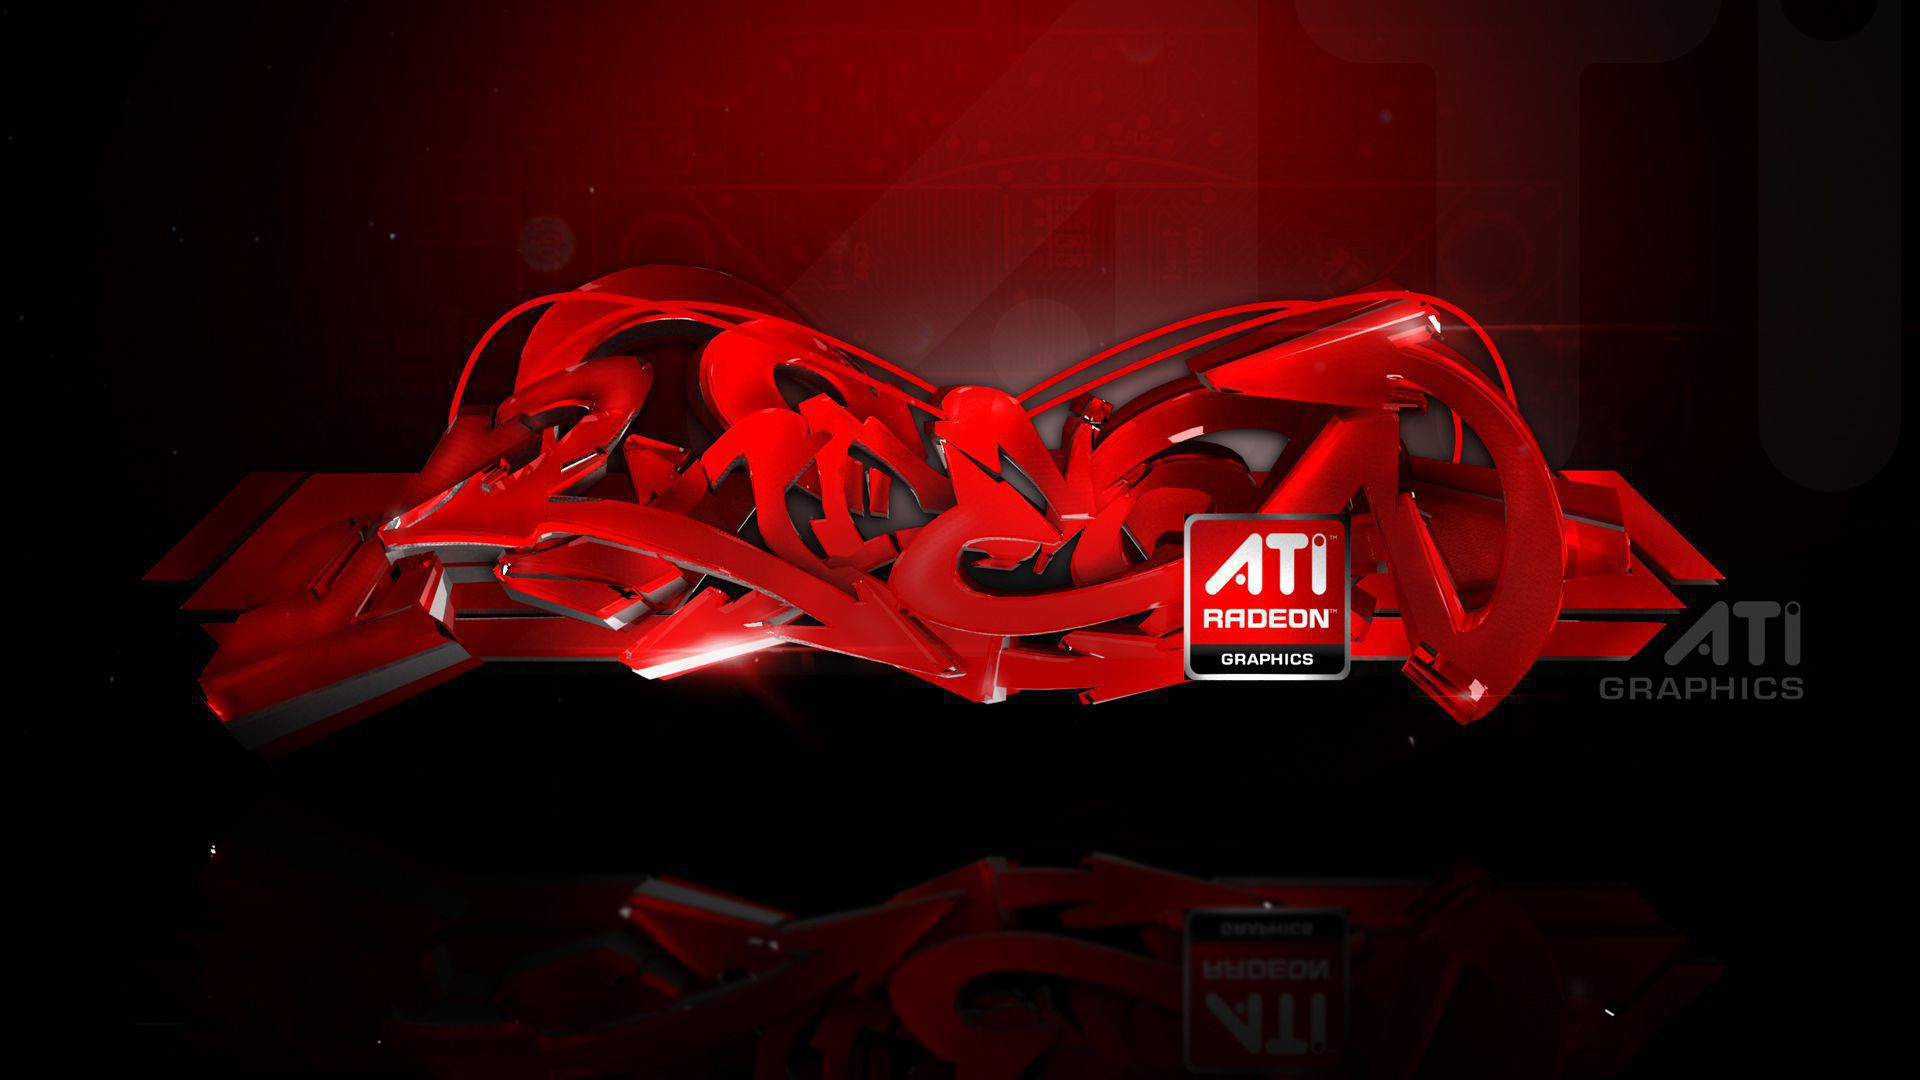 Ati Radeon Wallpapers HD